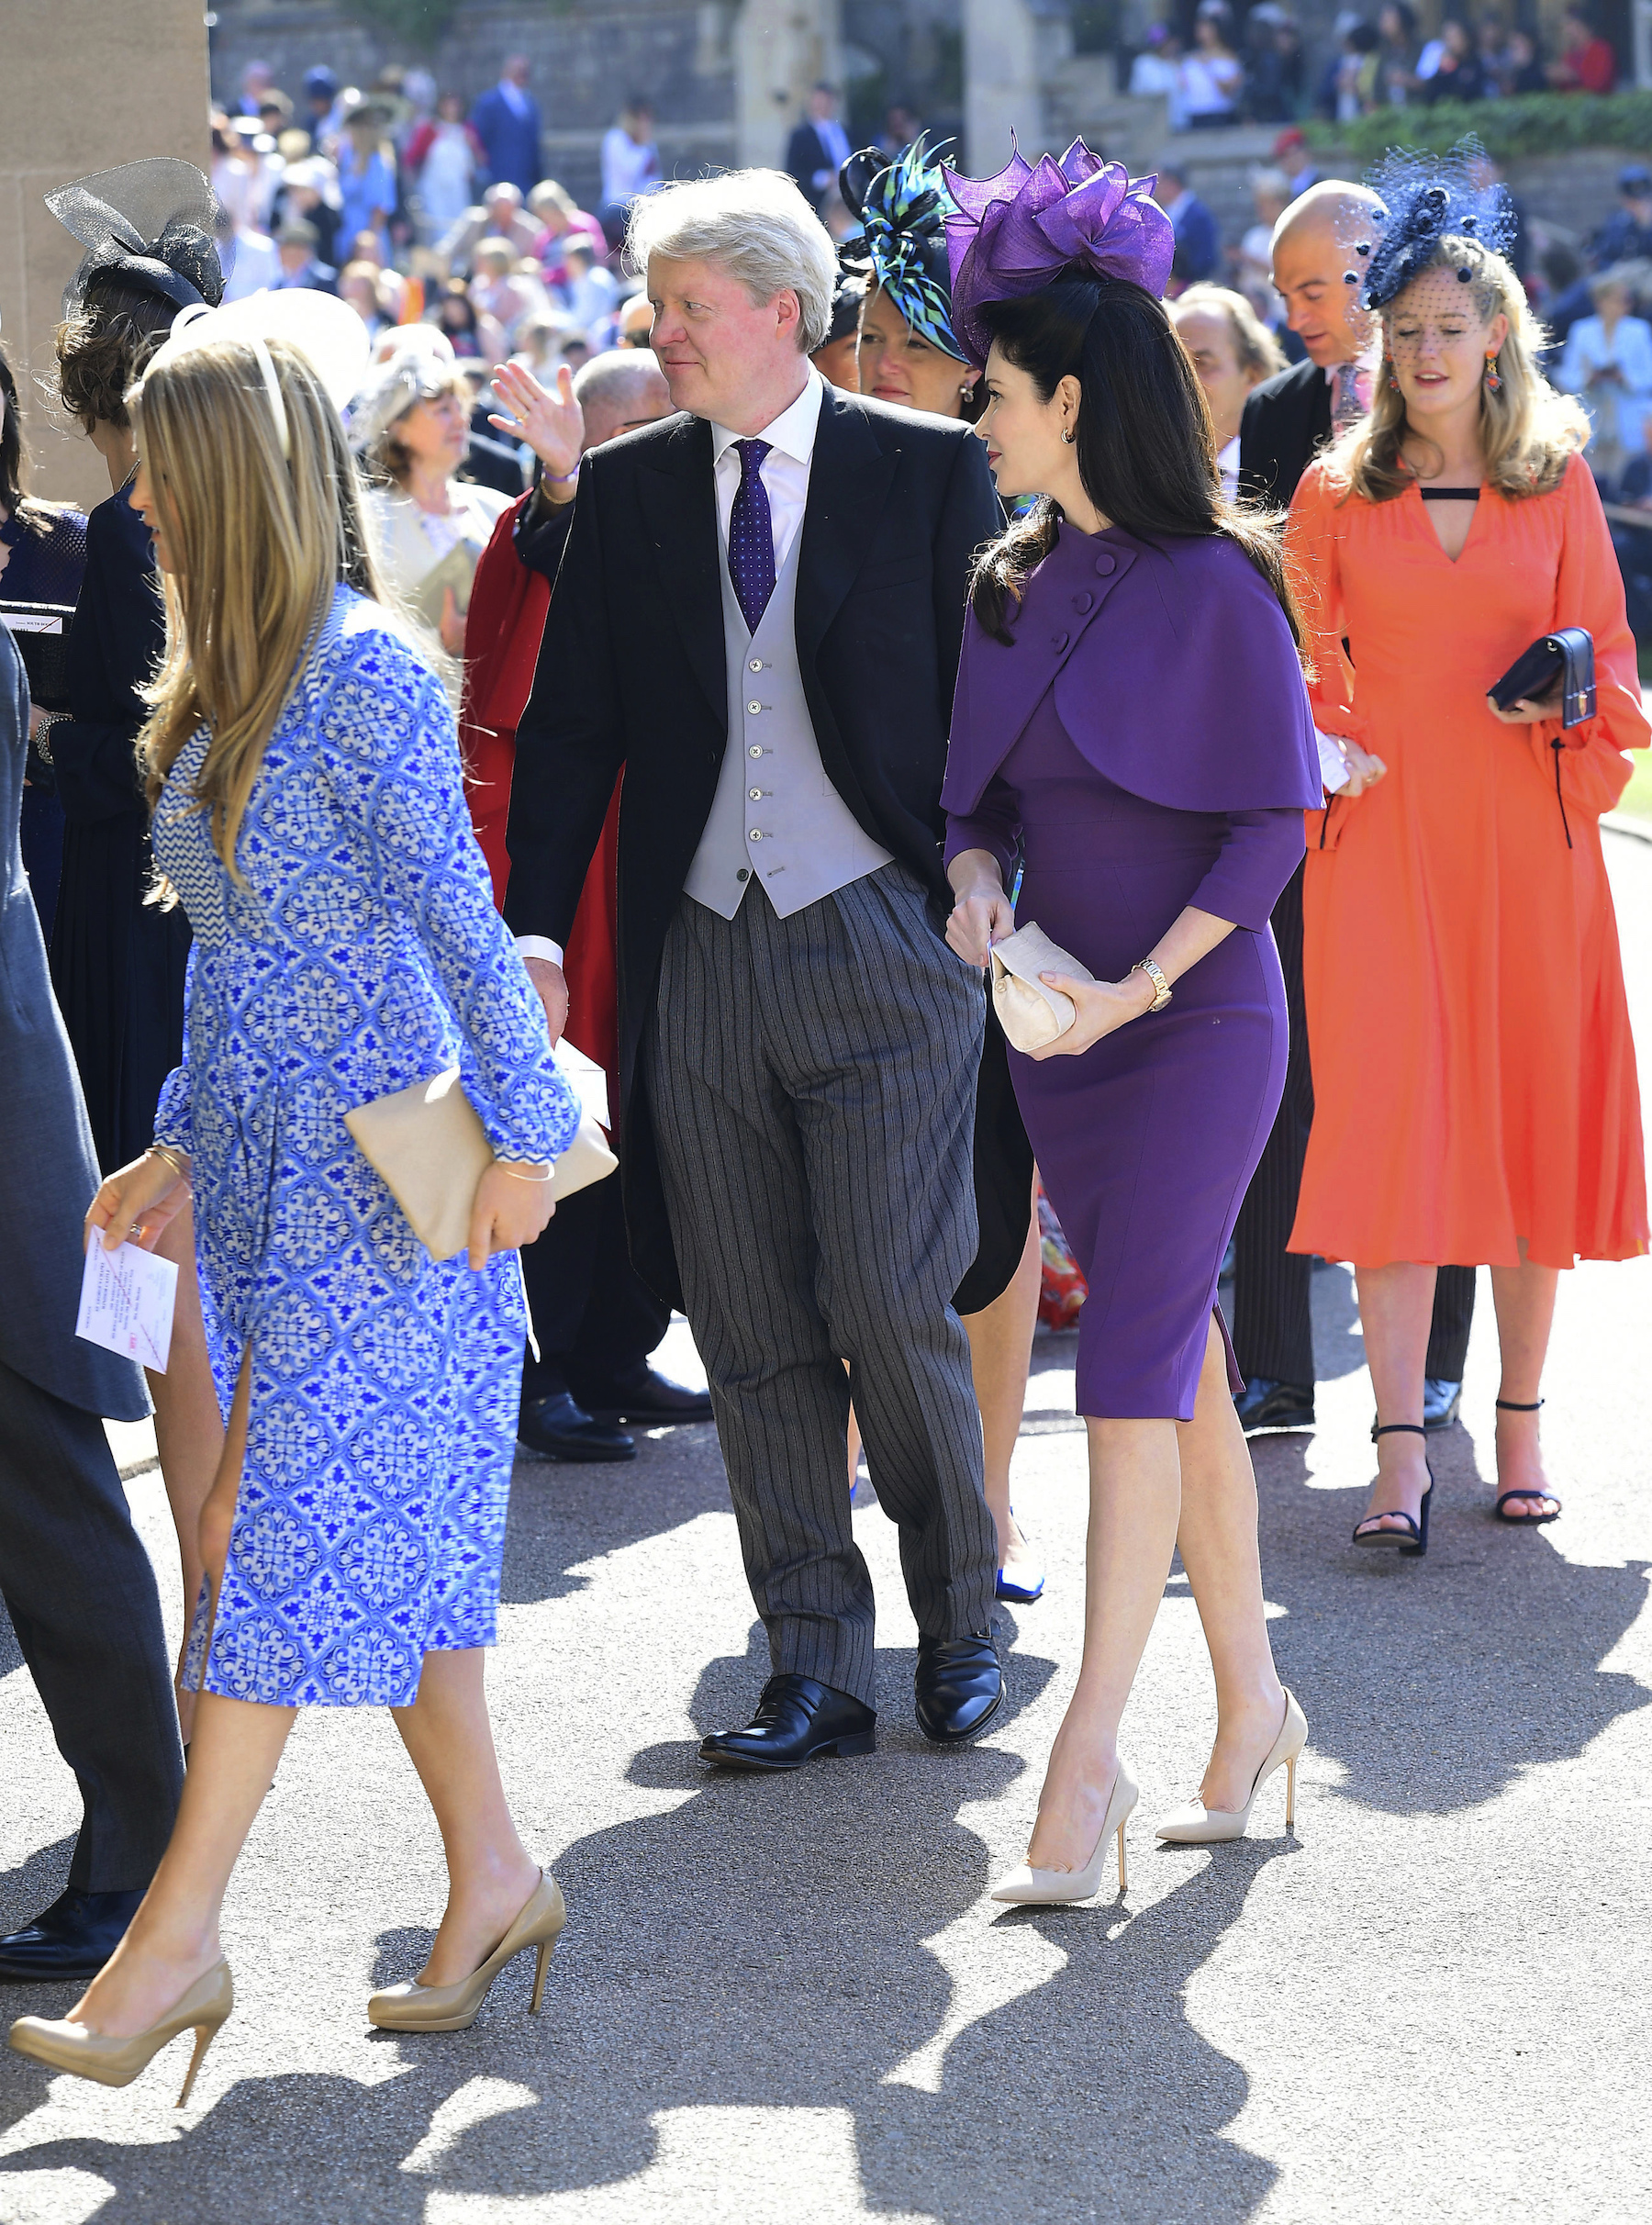 "<div class=""meta image-caption""><div class=""origin-logo origin-image ap""><span>AP</span></div><span class=""caption-text"">Charles Spencer (centre) arrives at St George's Chapel at Windsor Castle for the wedding of Meghan Markle and Prince Harry. (Ian West/PA Wire)</span></div>"